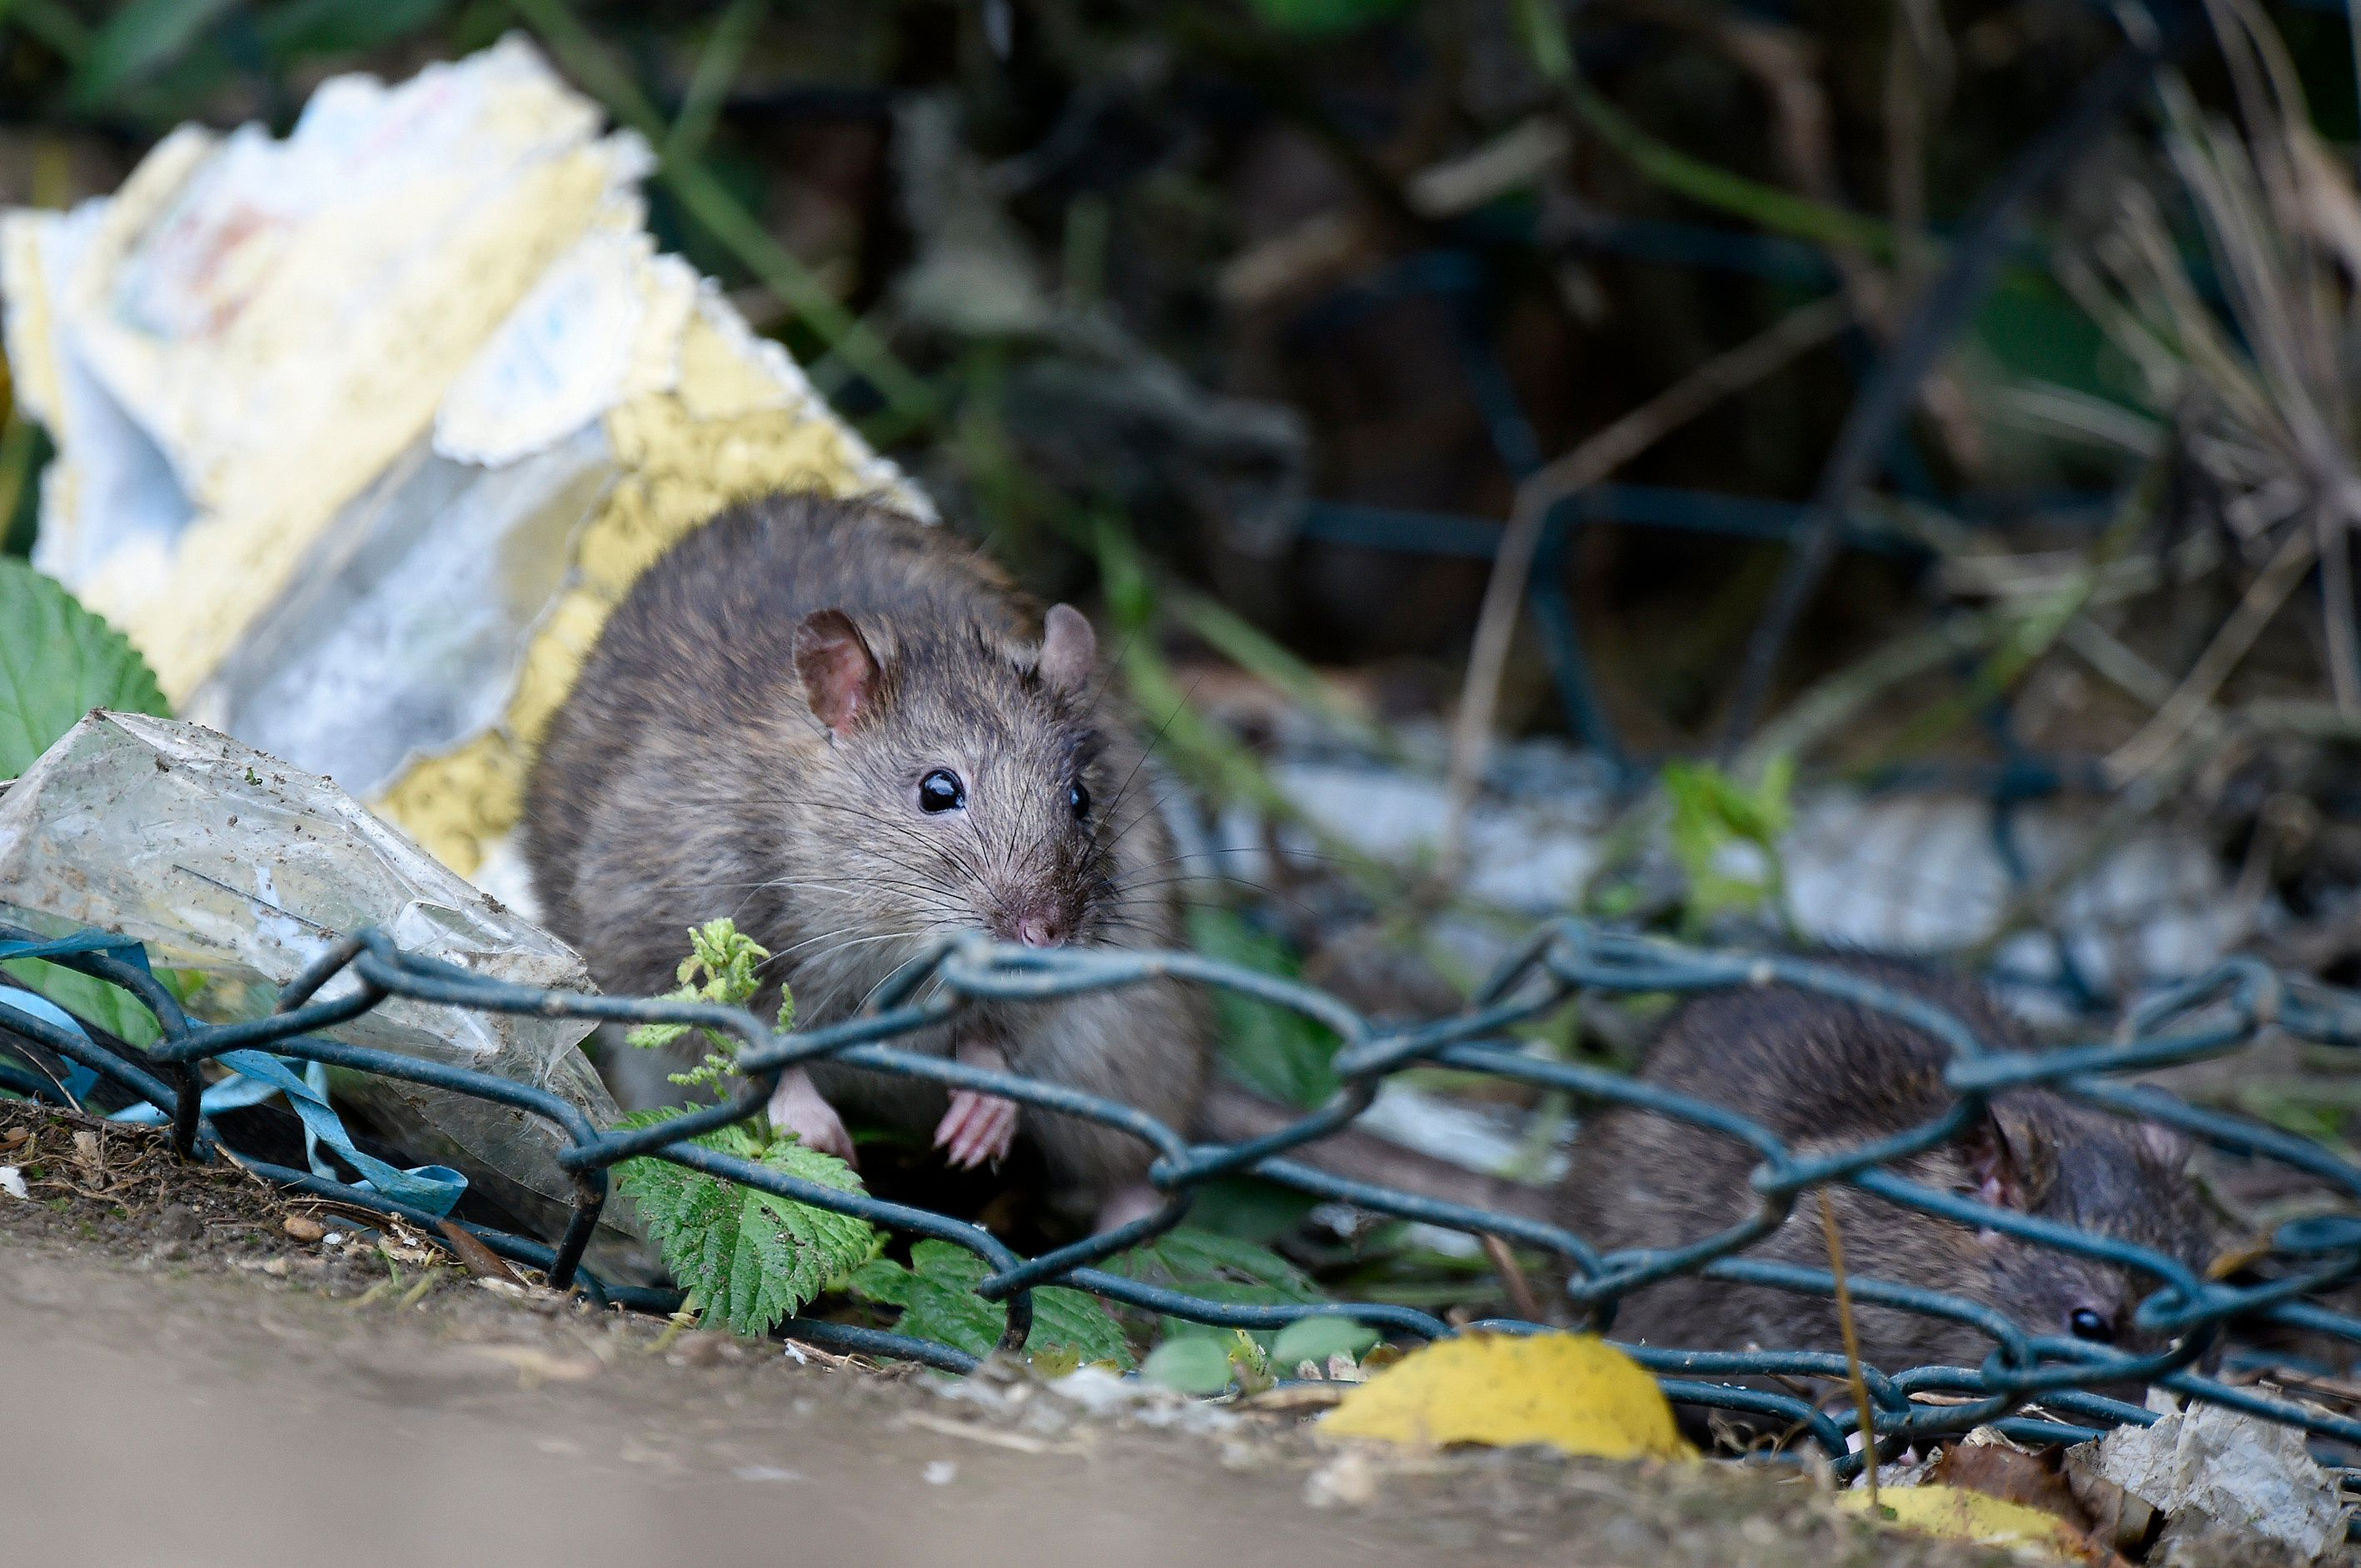 """""""City rats are among the most important but least-studied wildlife in urban environments,"""" according to a new study published"""